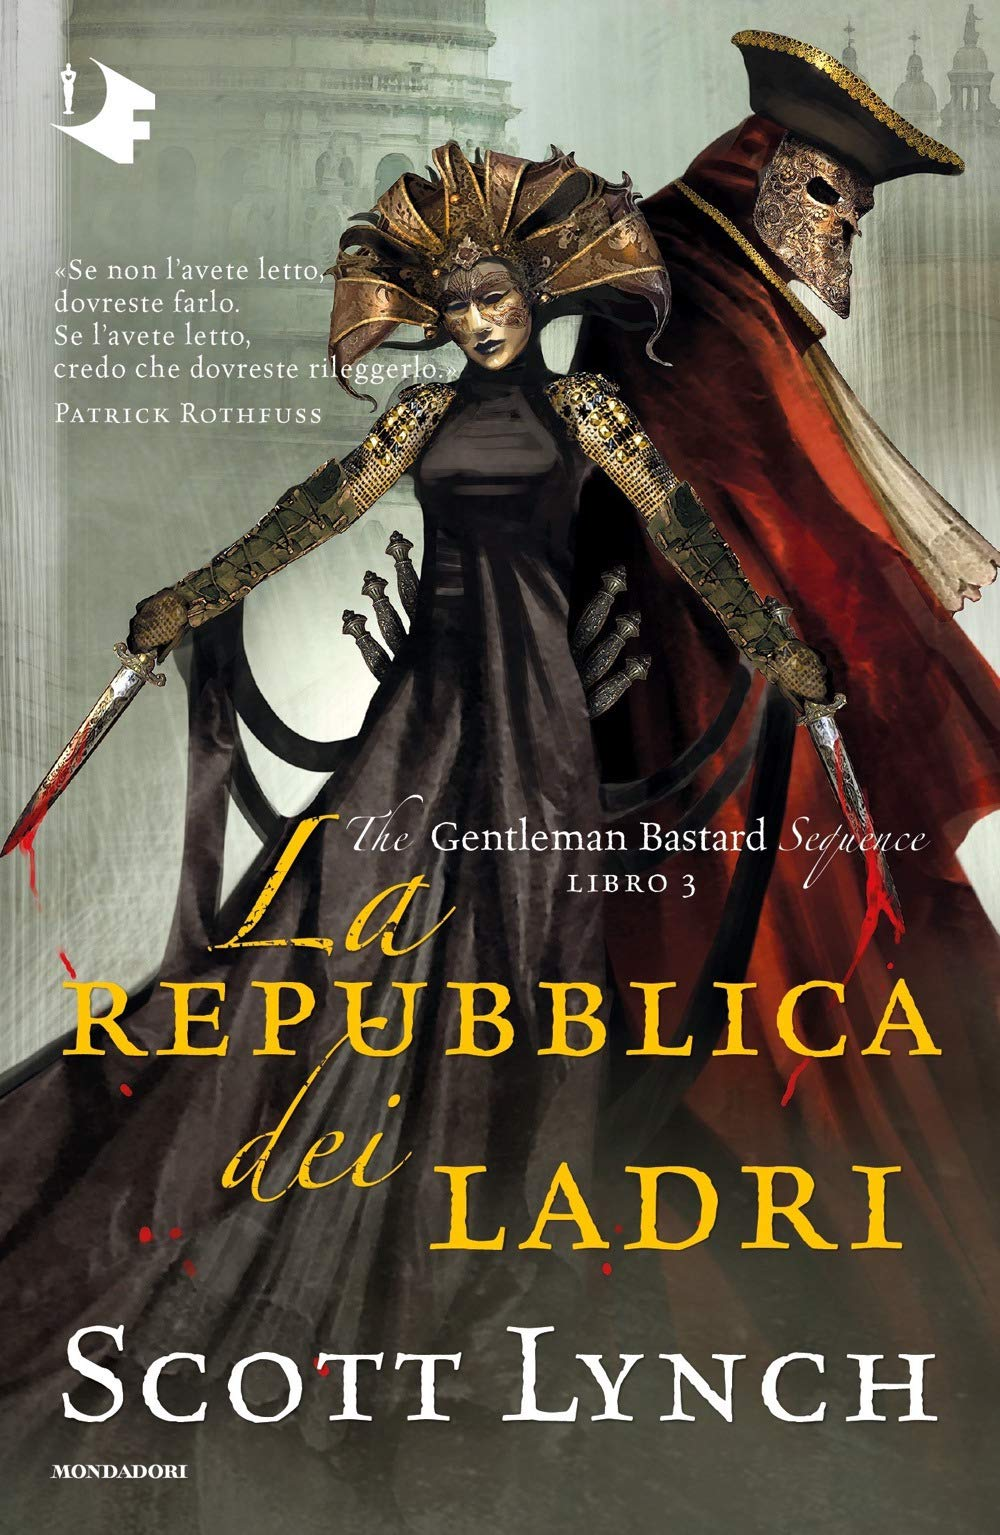 La repubblica dei ladri. The Gentleman Bastard di Scott Lynch